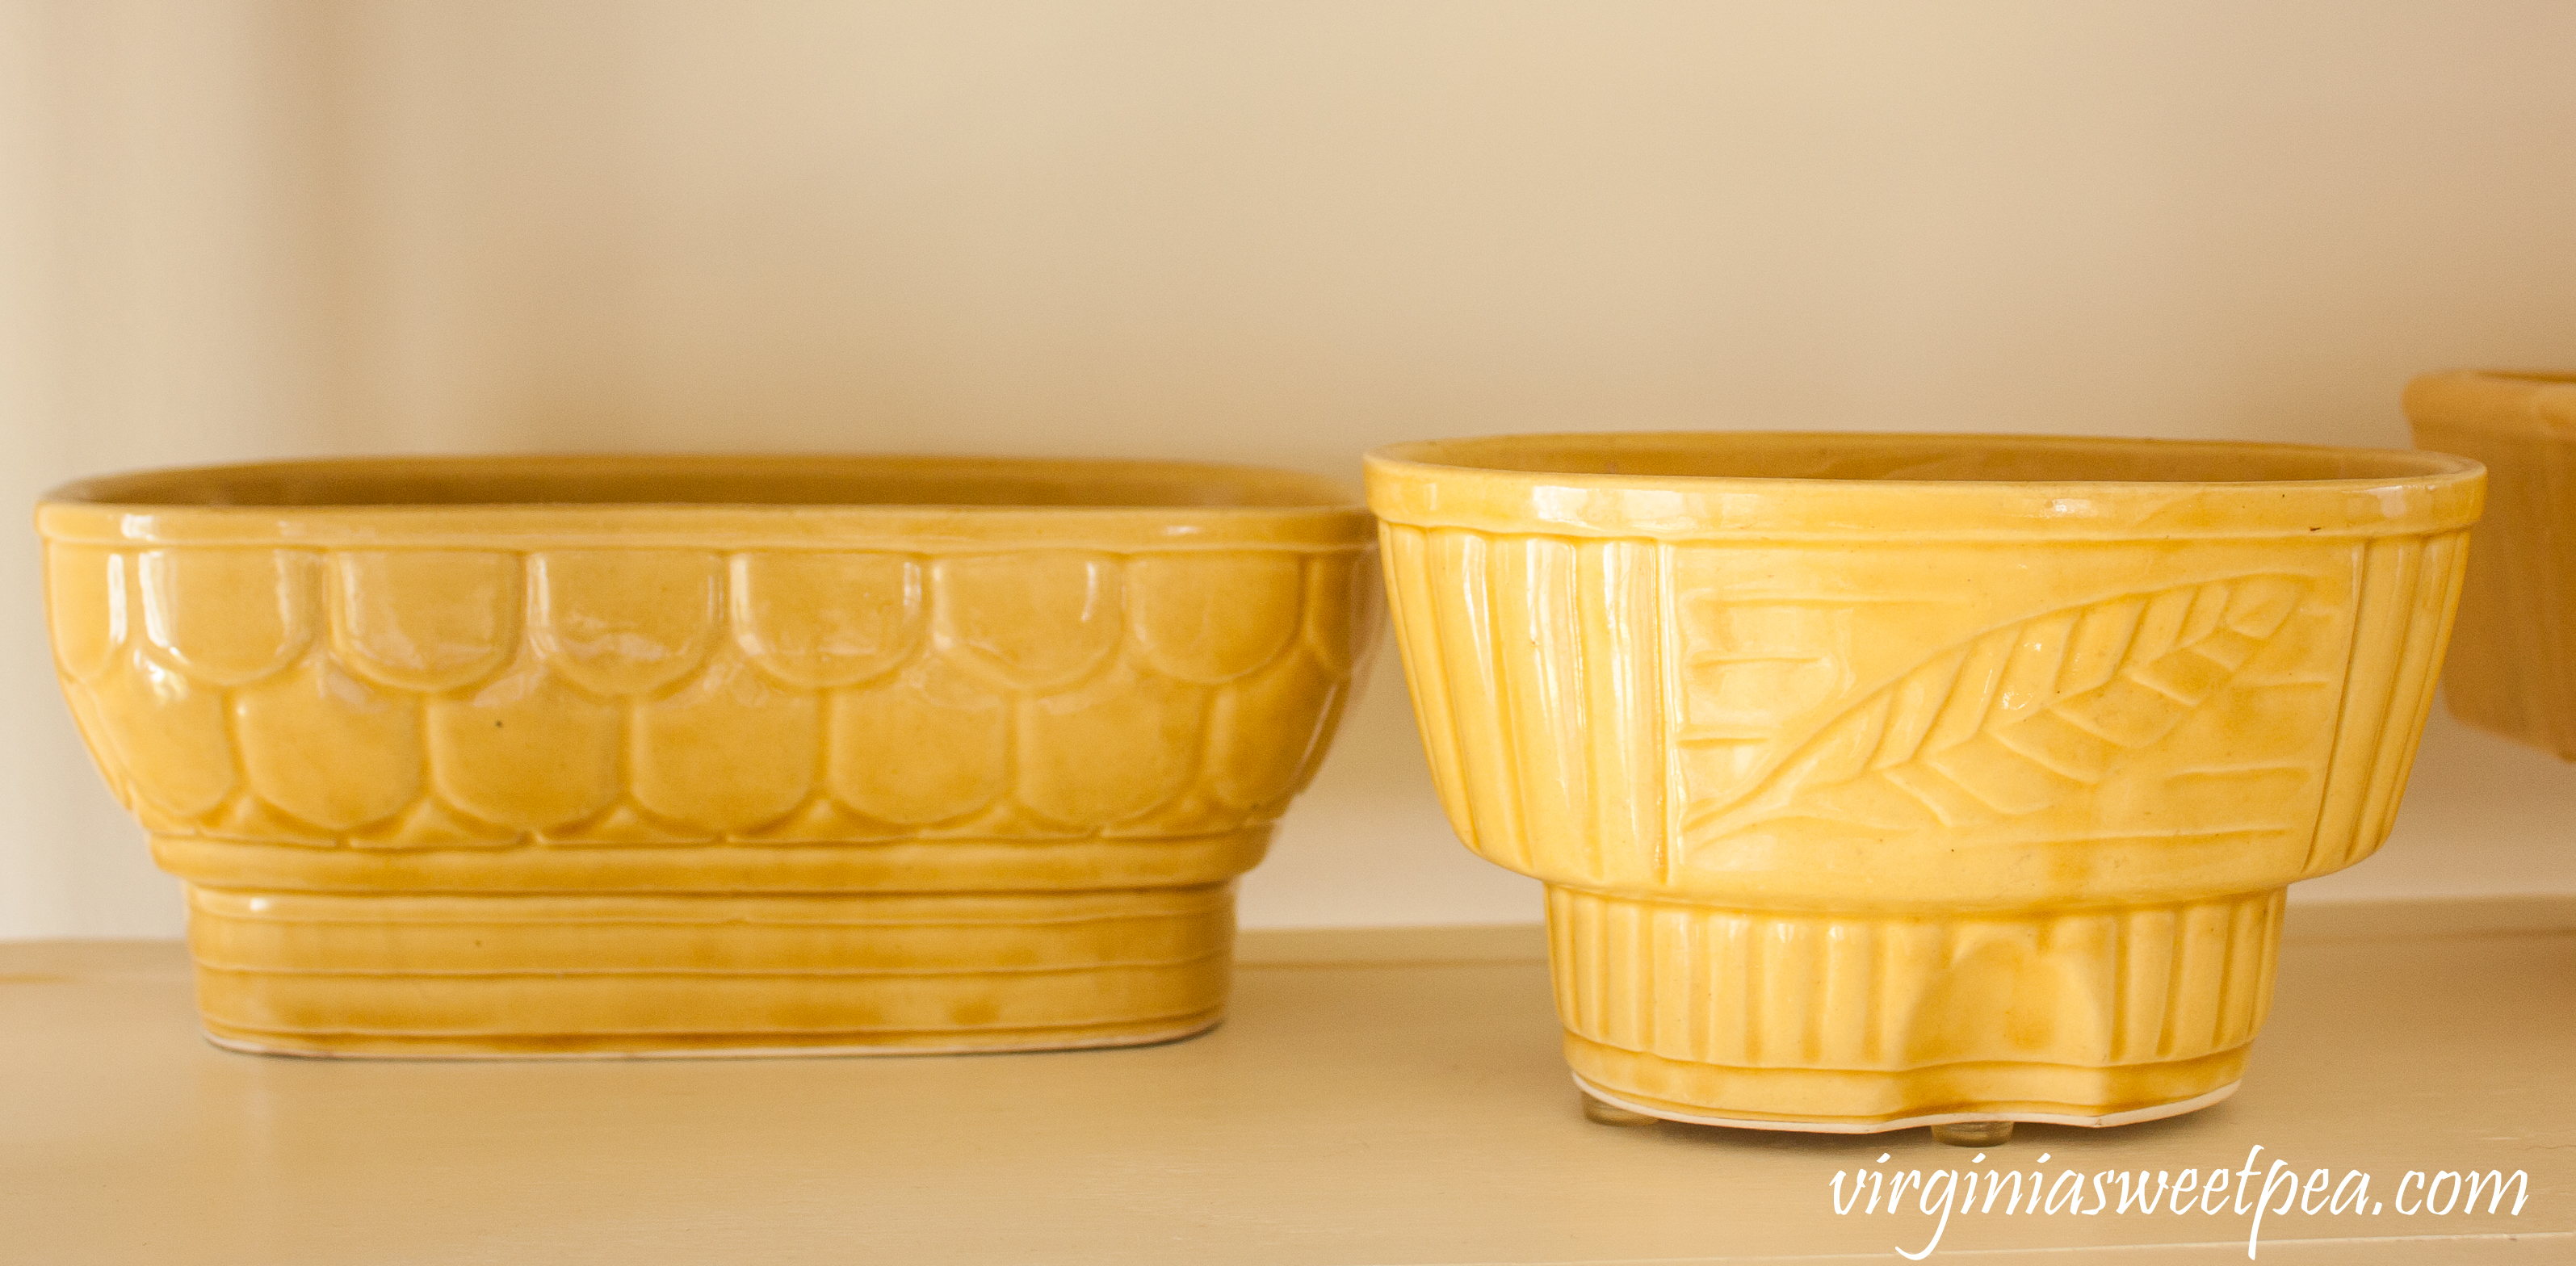 Vintage Cookson Yellow Pottery #vintagepottery #vintageflowerplanter #vintageplanters #cooksonpottery #cookson